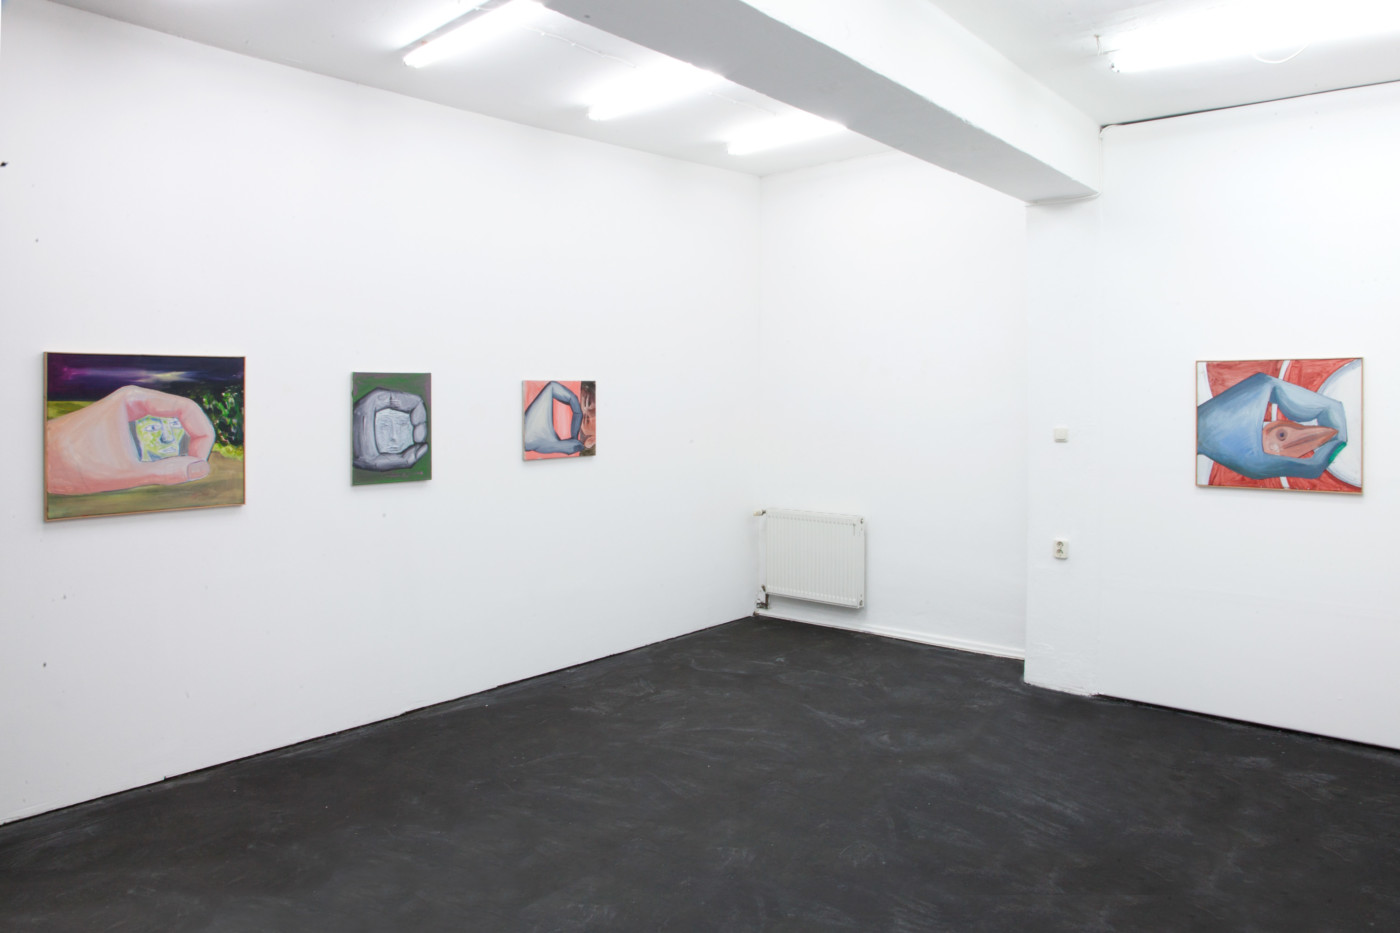 TOM HUMPHREYS  Scanners , 2018, Schiefe Zähne, Berlin, installation view - High Art Gallery Paris